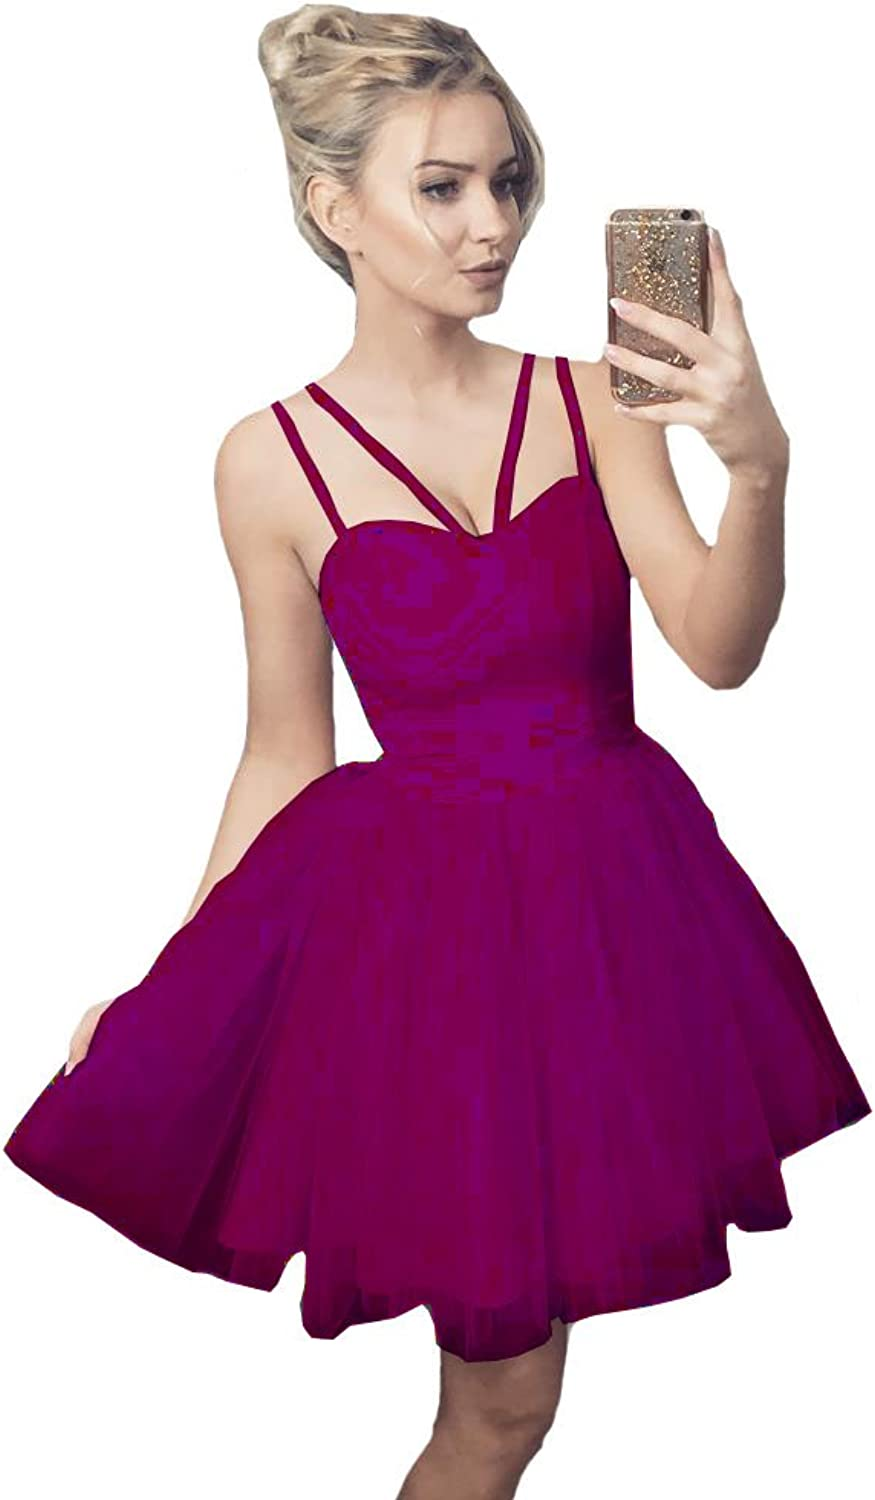 Lilyla Womens Simple A Line Homecoming Dresses Short Tulle Ball Gowns Graduation Dresses